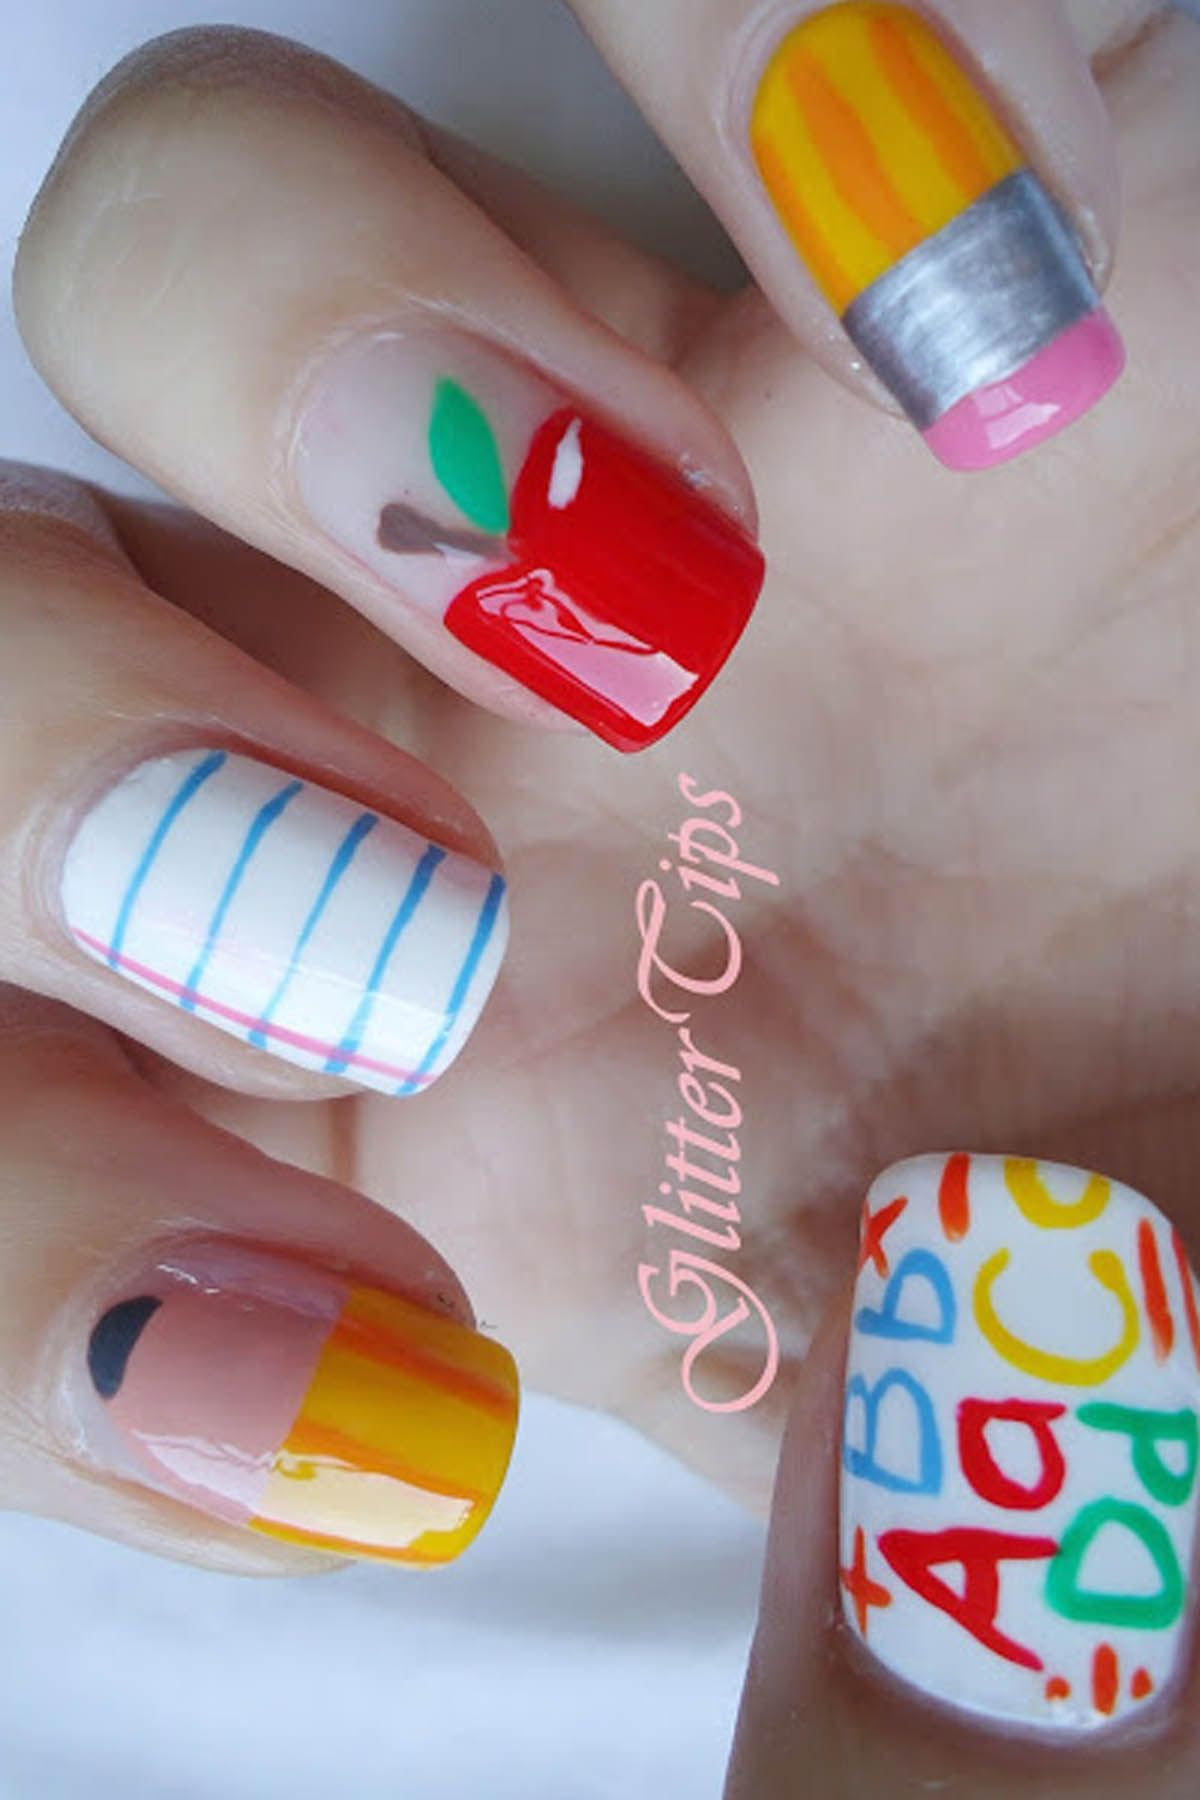 10 Cute Back-to-School Nails - Best Nail Art Design Ideas for School